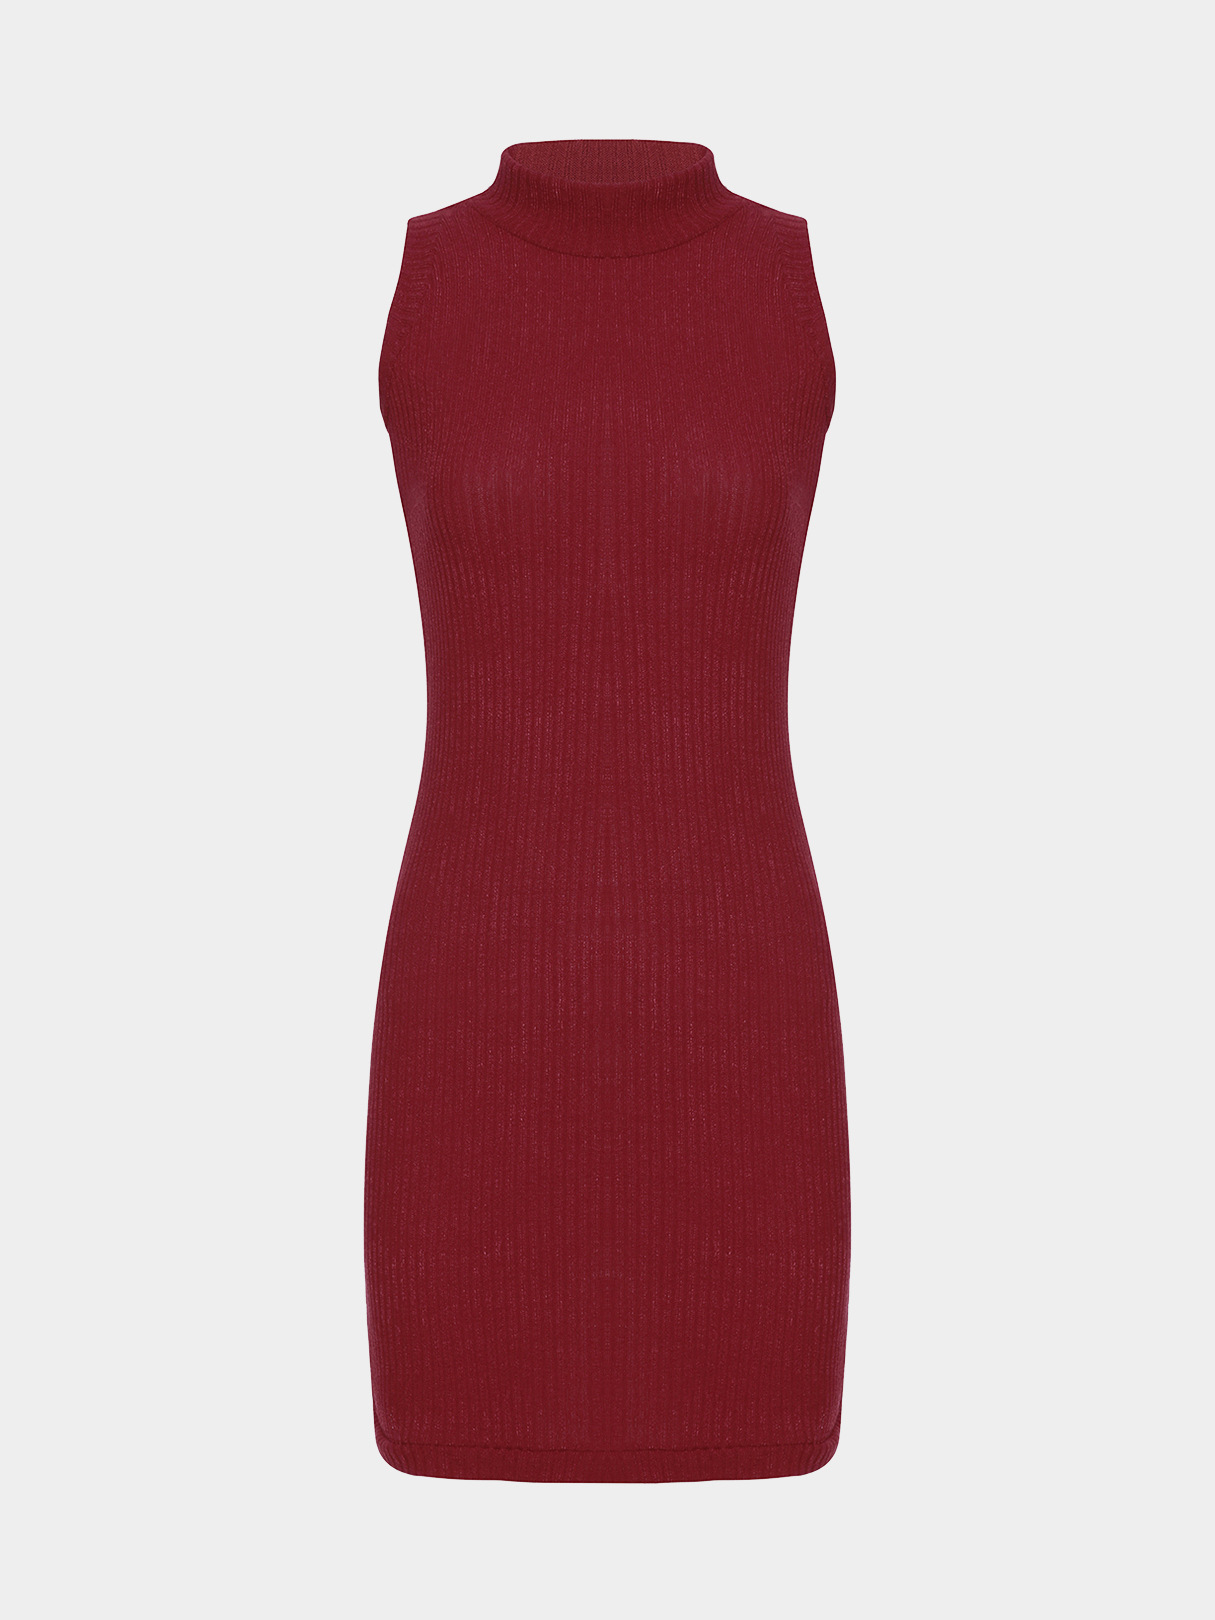 Burgundy Sleeveless Crew Neck Knitted Mini Dress